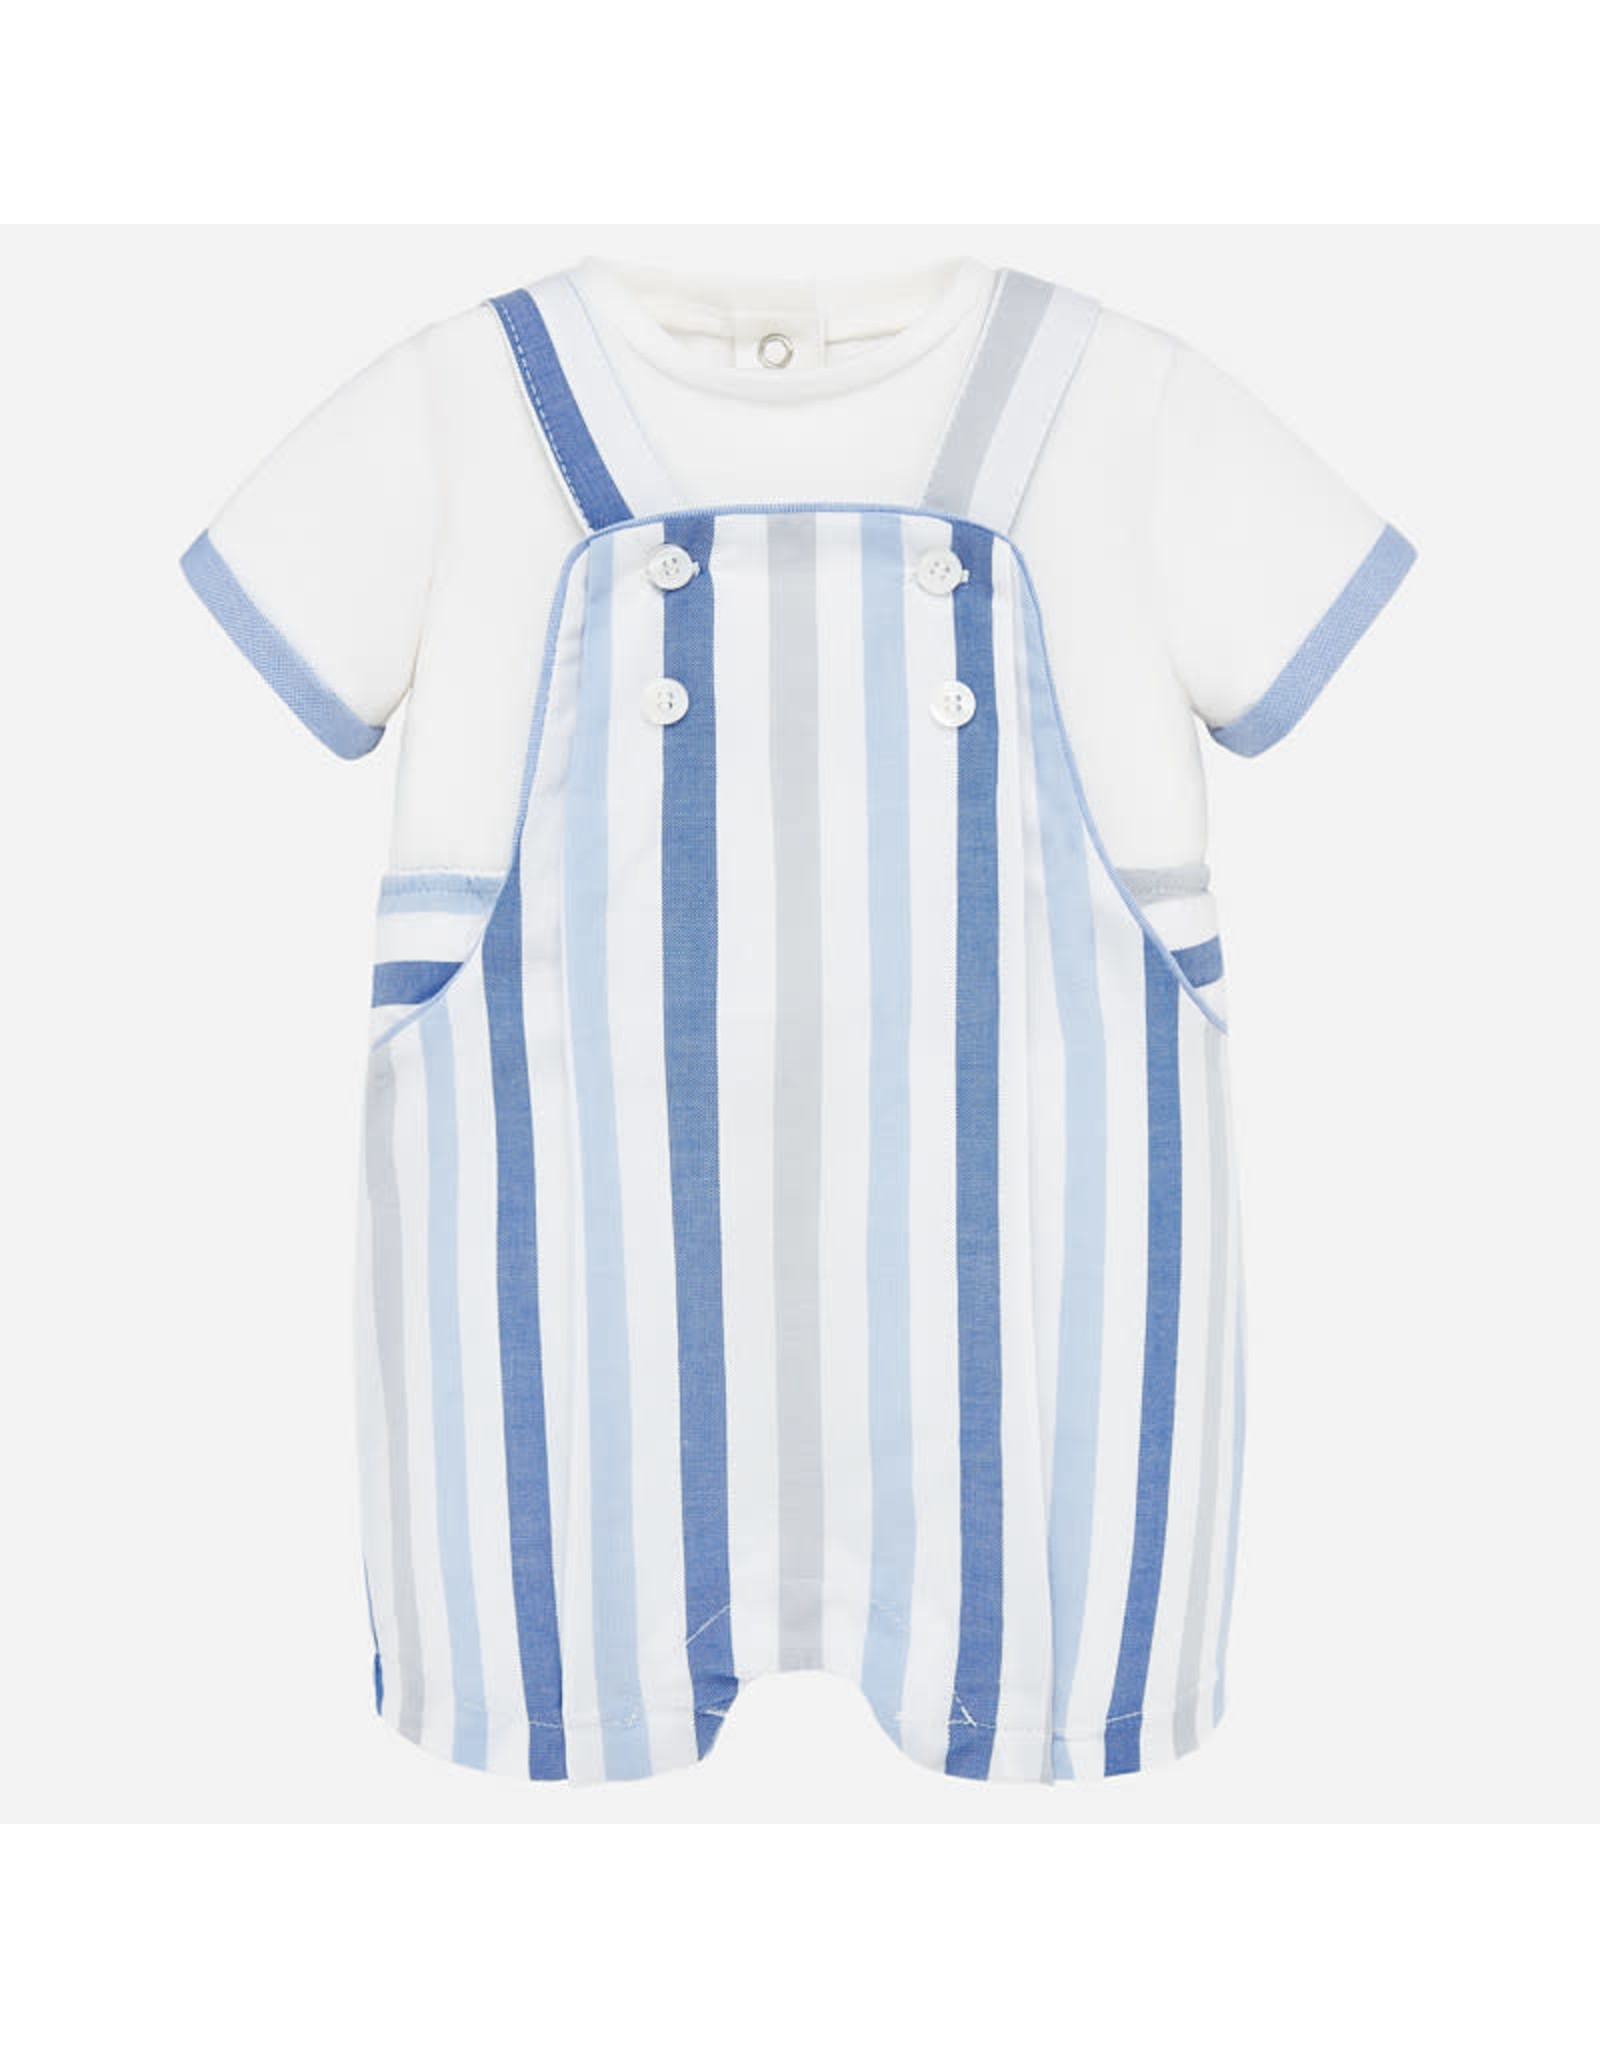 Mayoral Dream Dungaree Dress Up Set